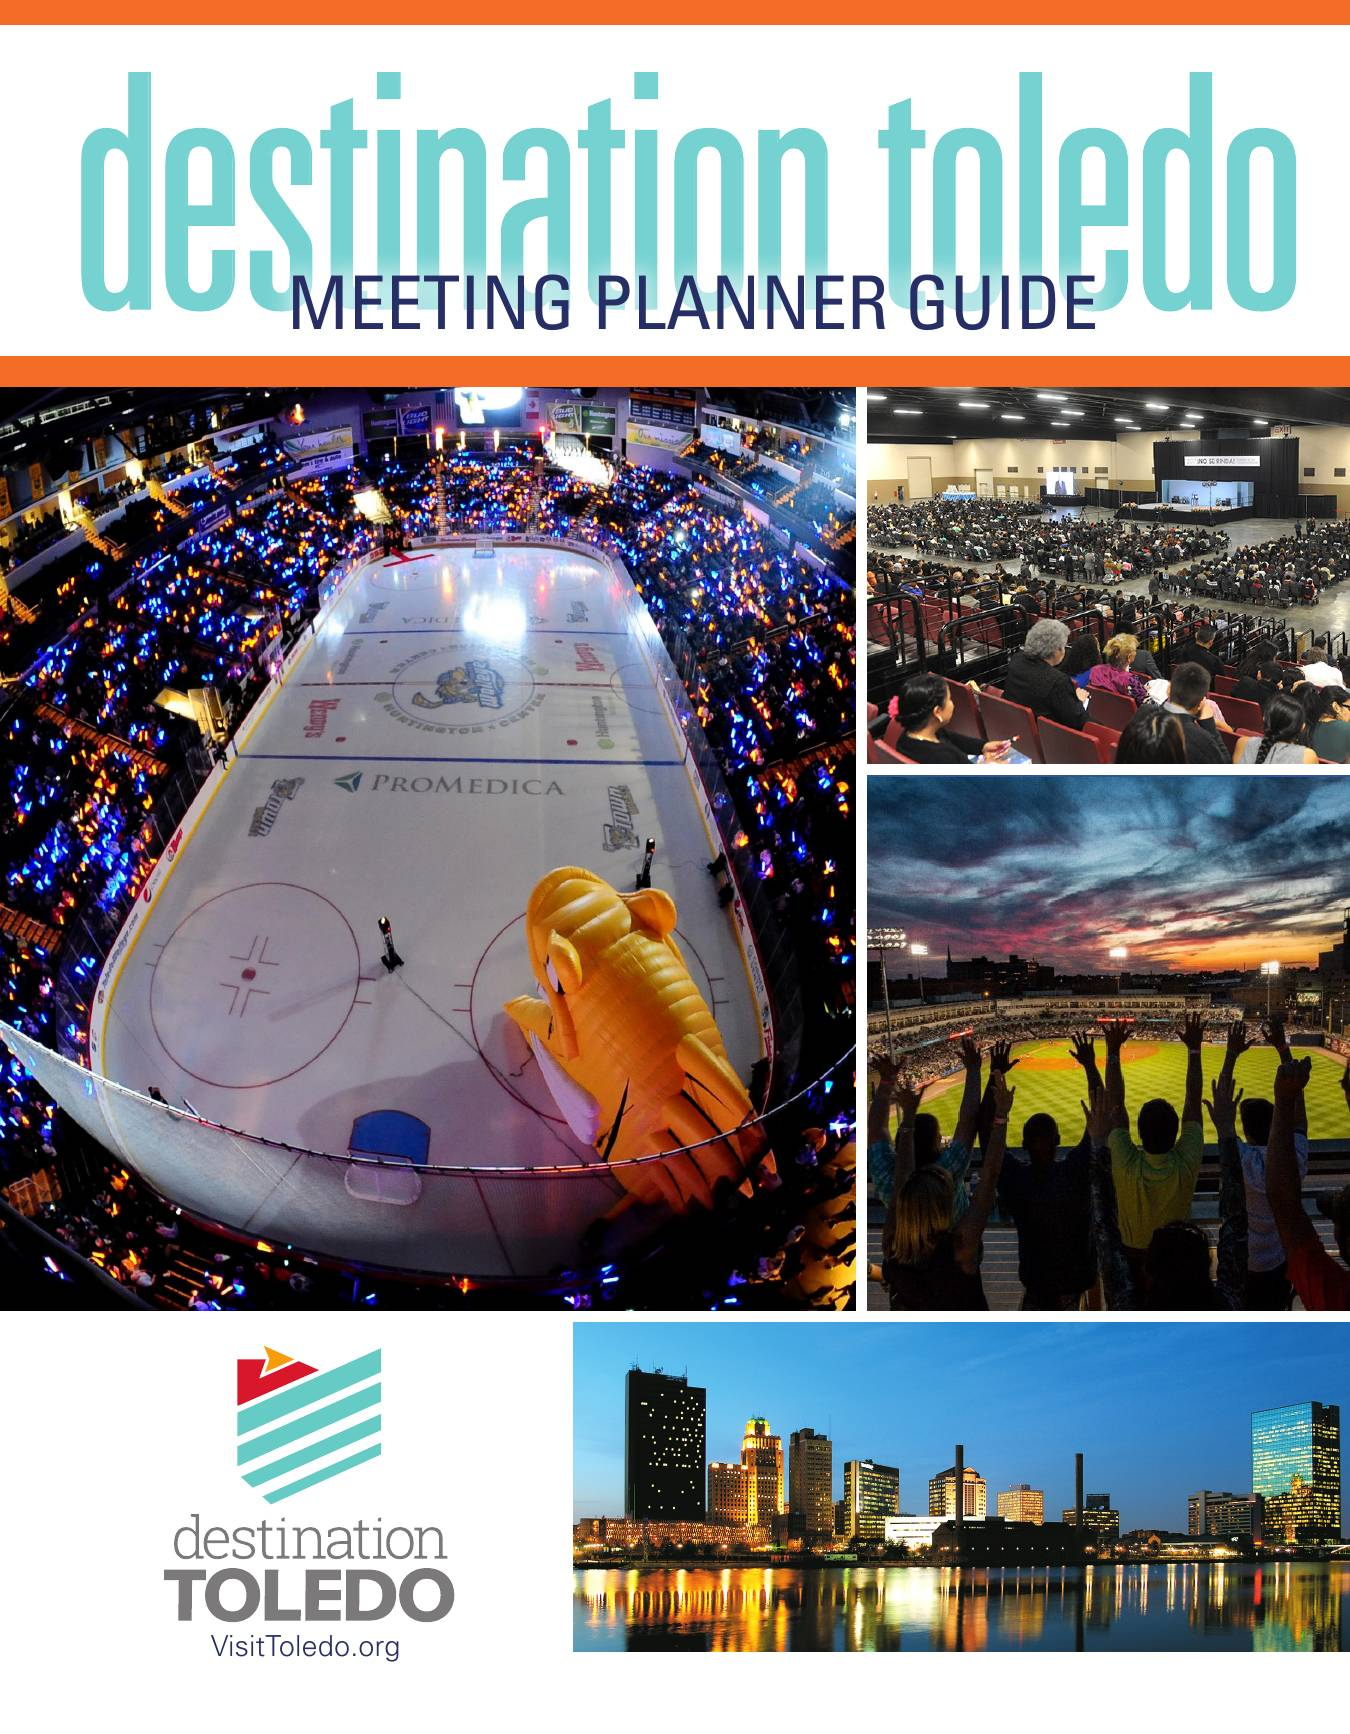 Toledos Meeting Planner Guide